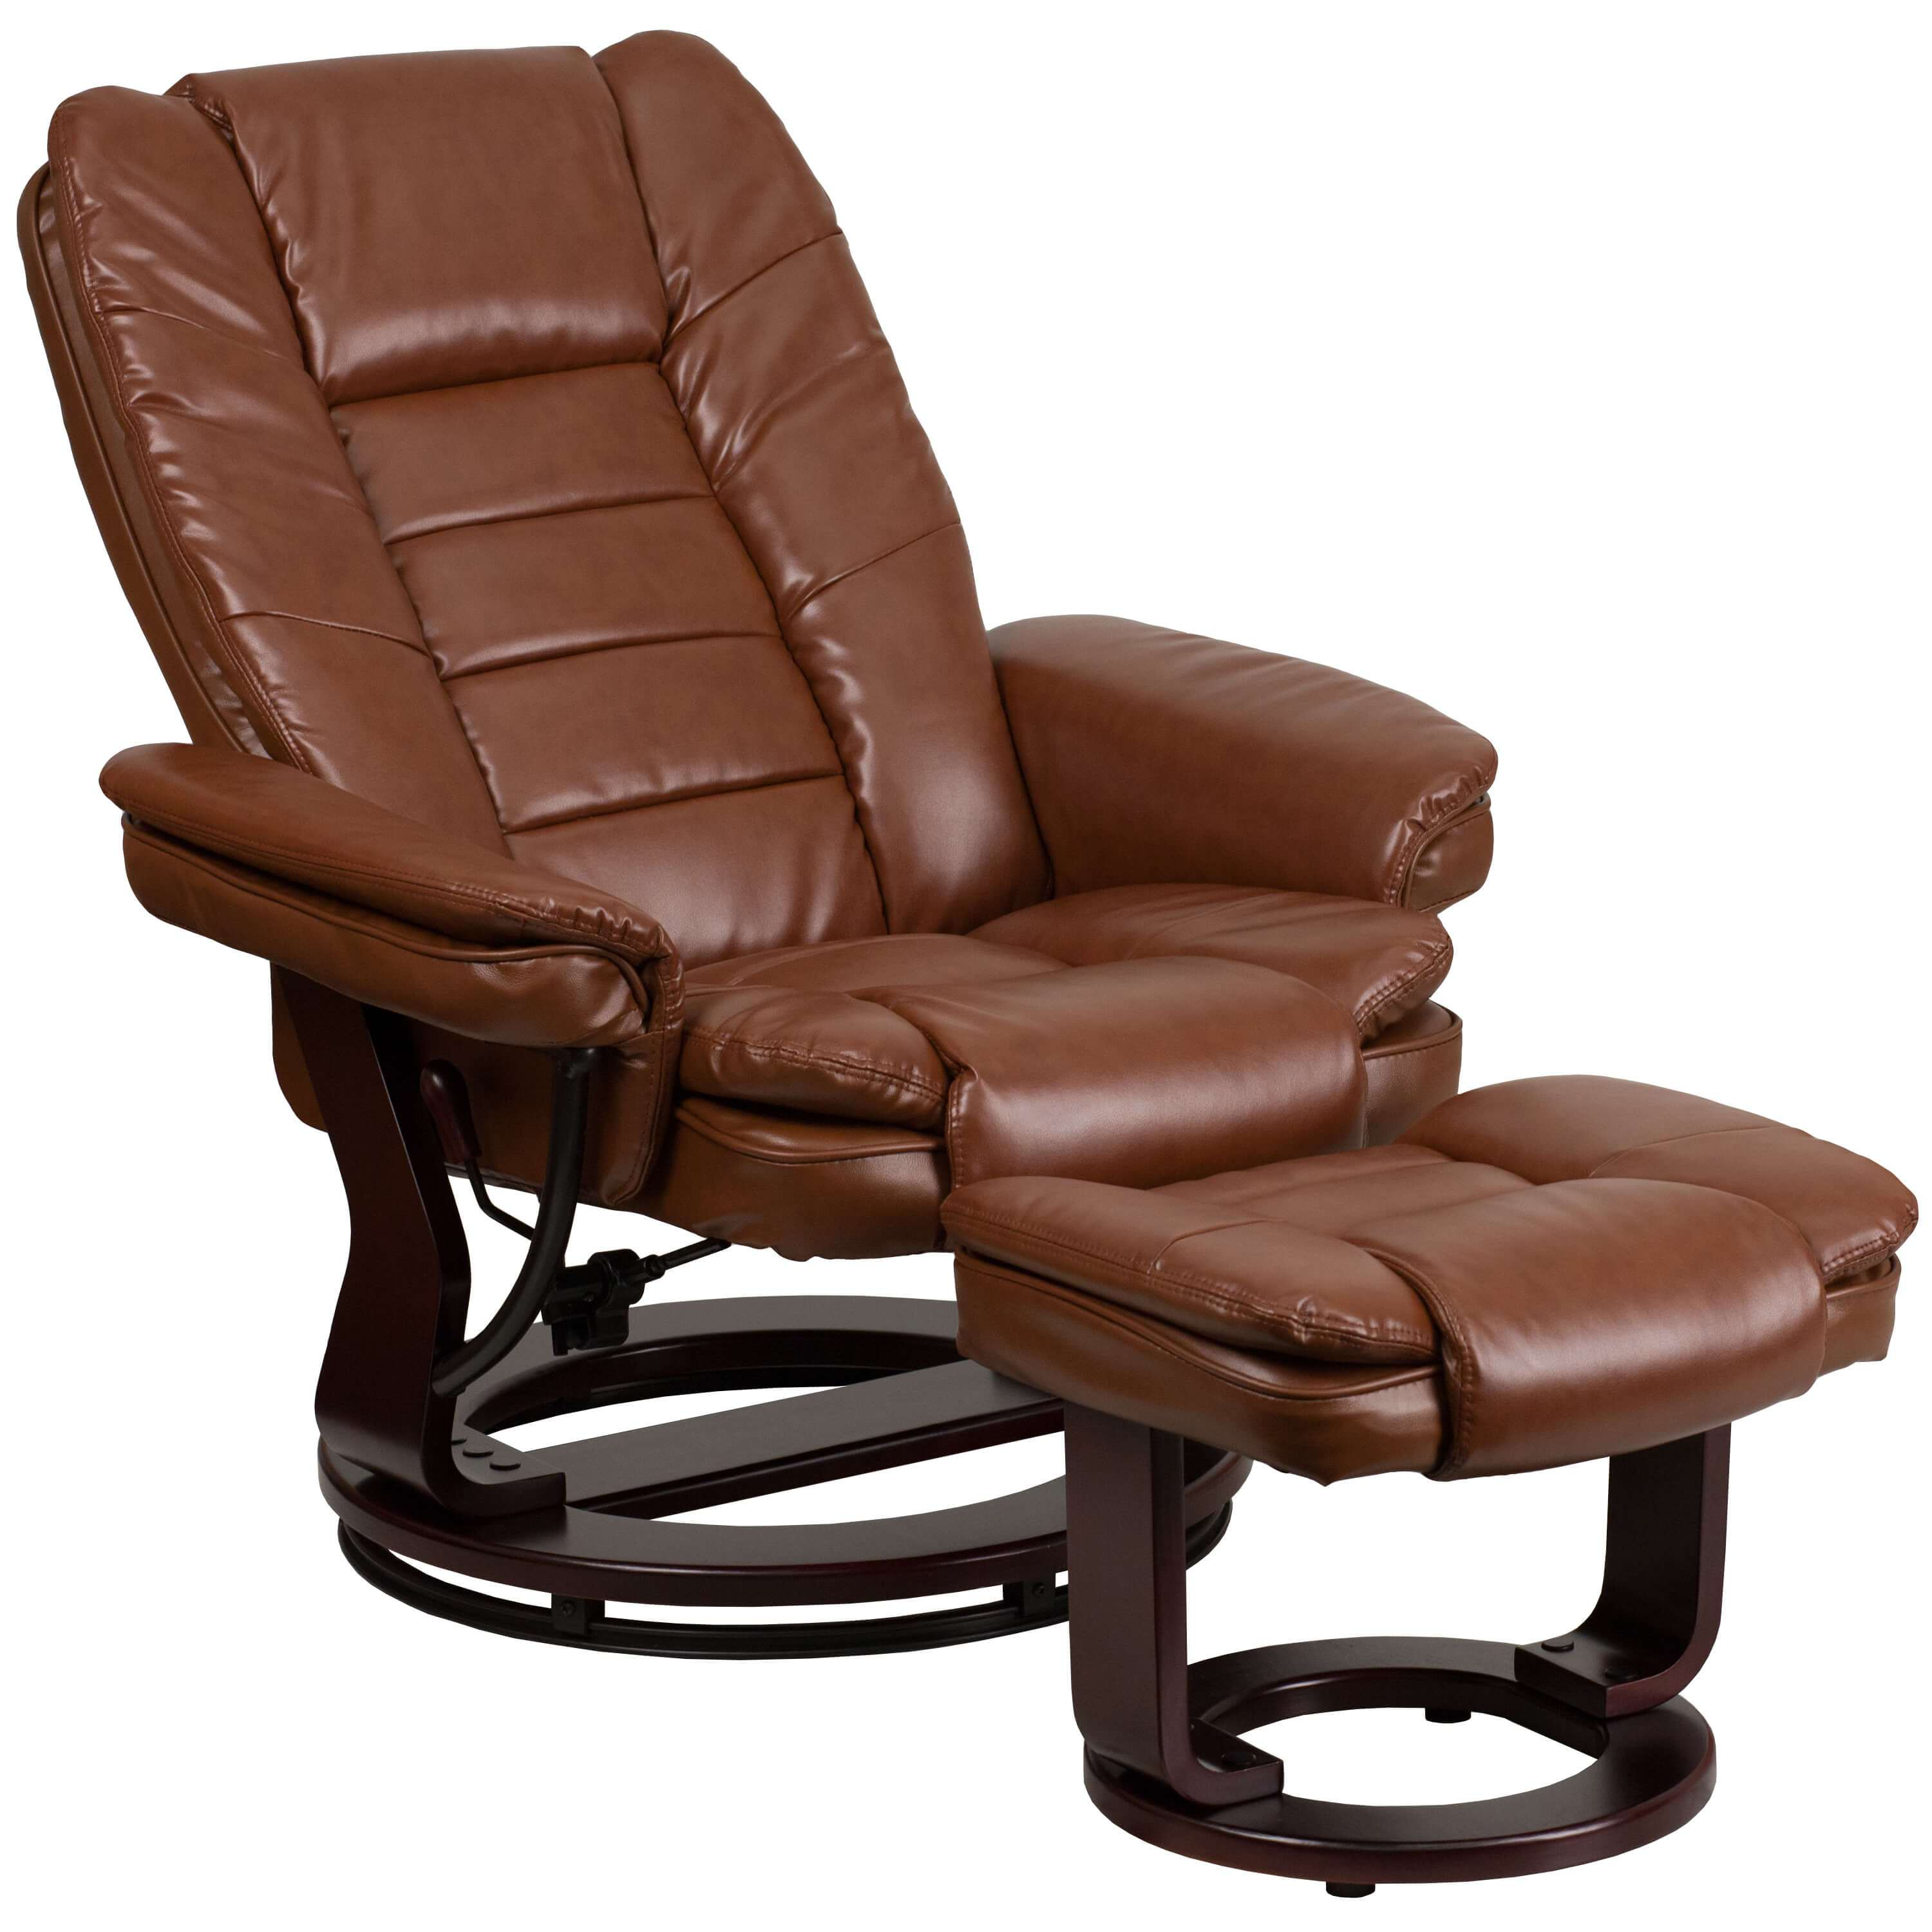 Contemporary recliner chair reclined view